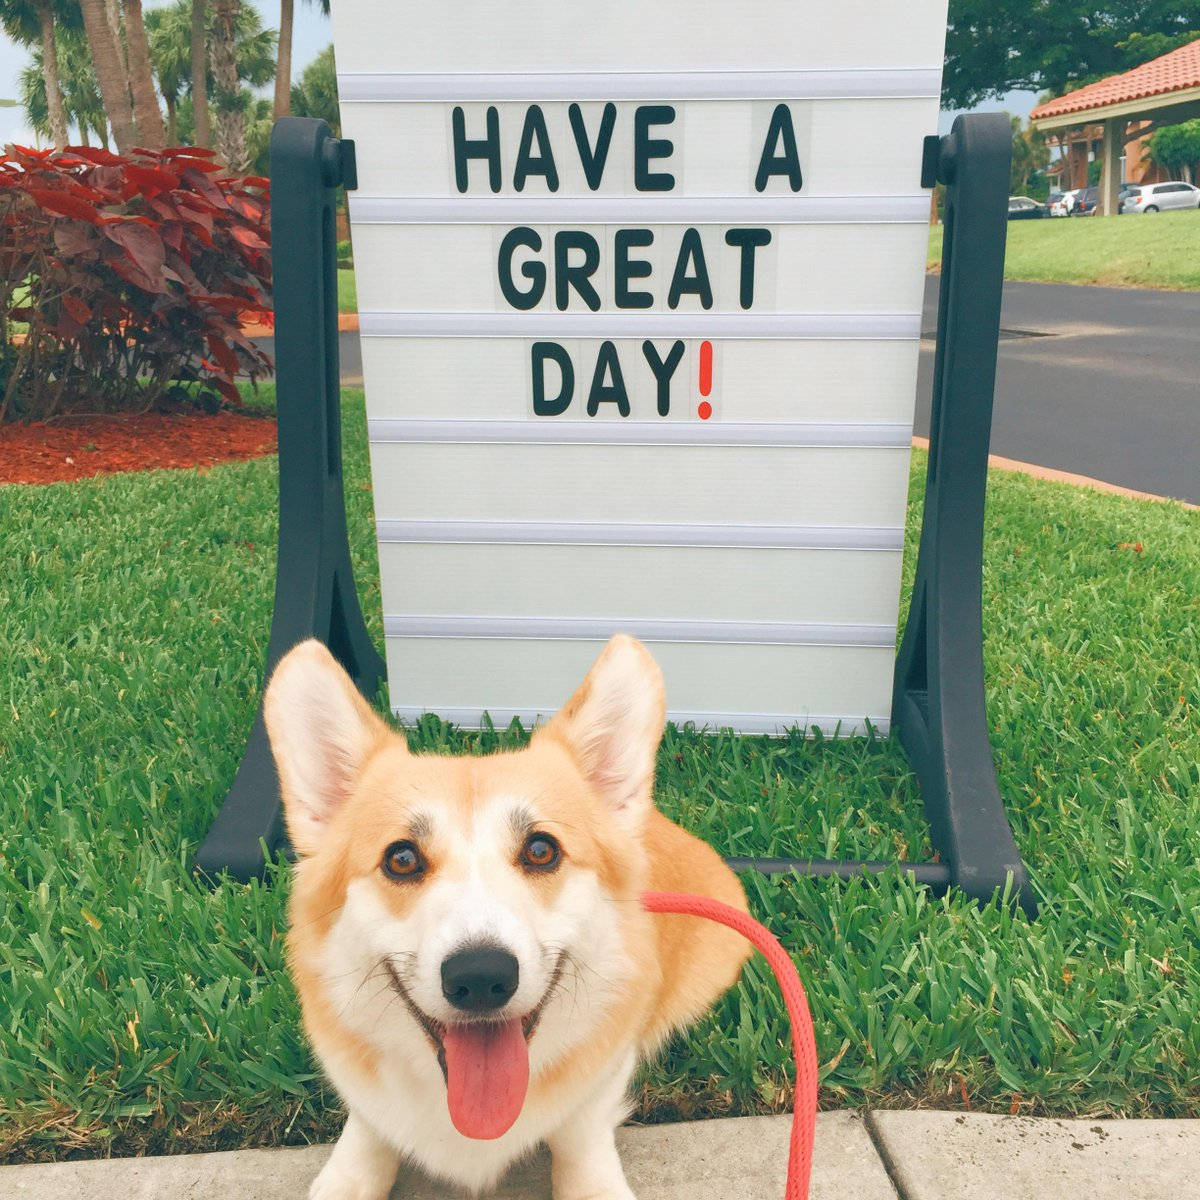 My #corgi #dog has a message for you guys! http://t.co/8LZLbfQTNQ